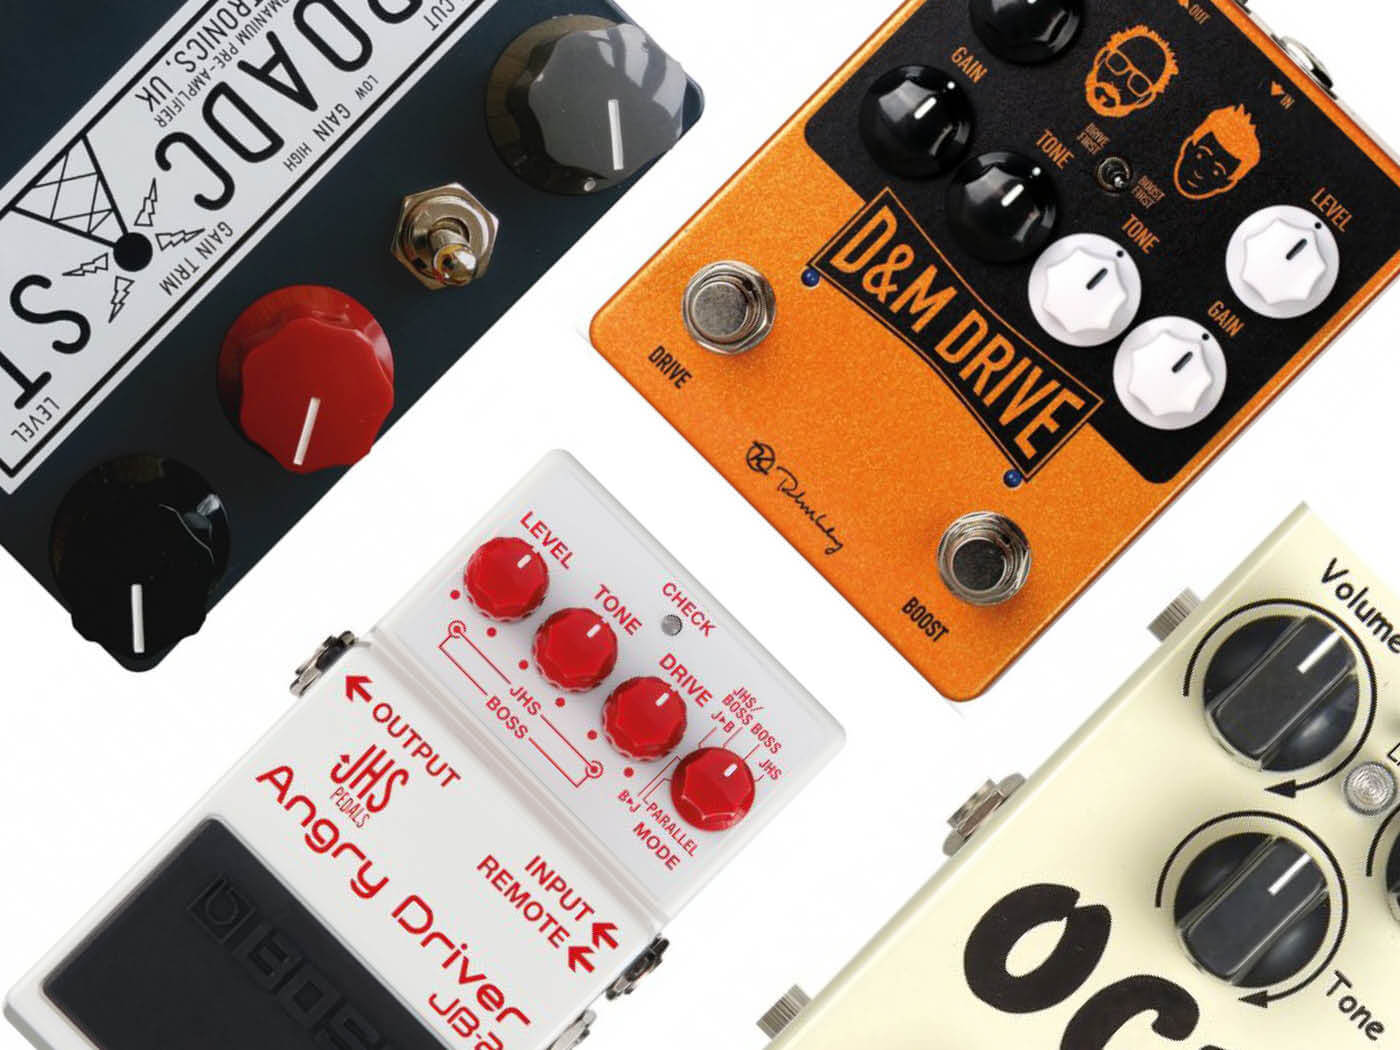 20 best overdrive pedals to buy in 2019 - Guitar com | All